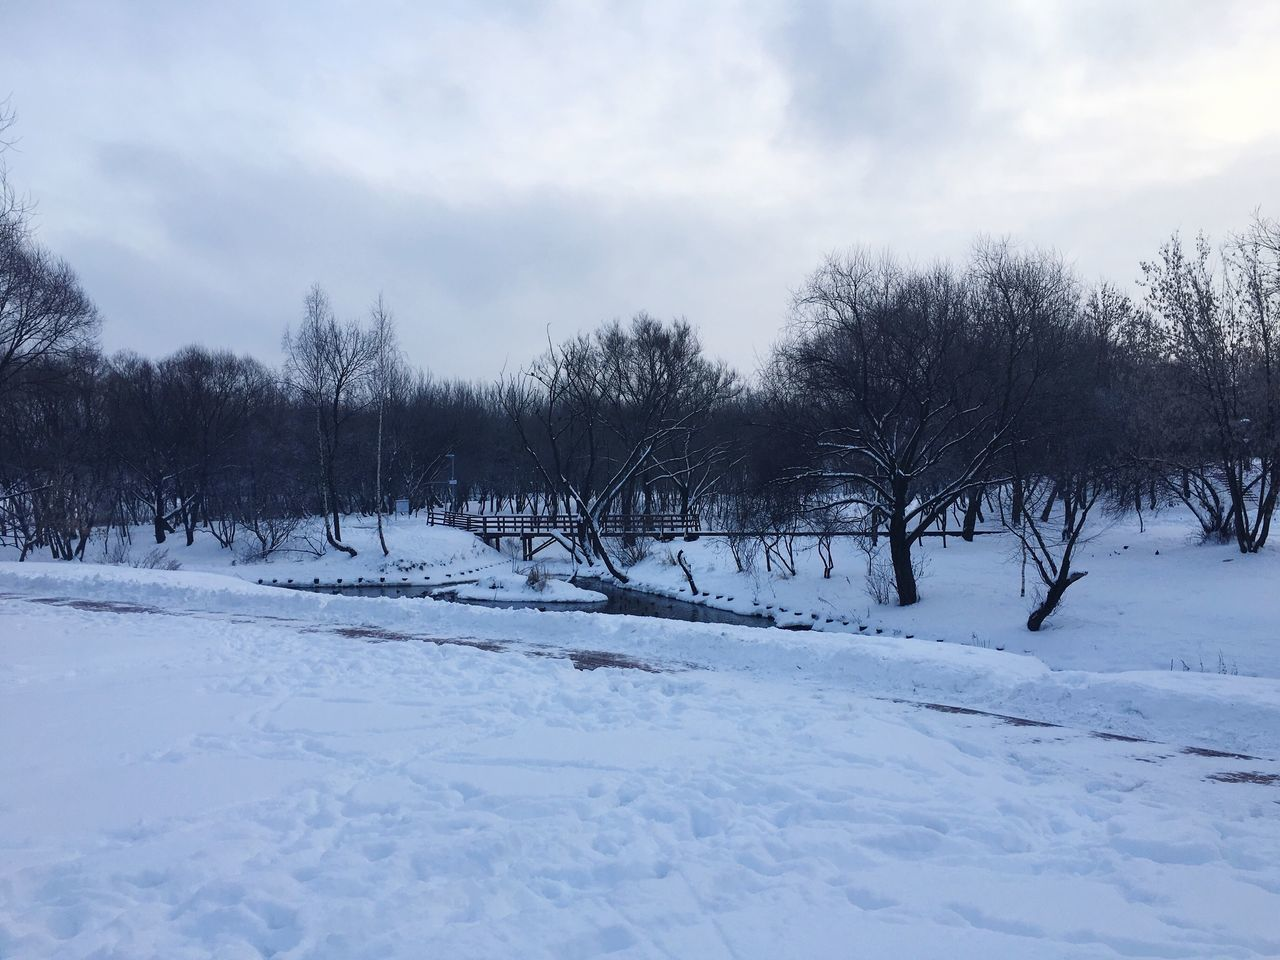 Cold Temperature Snow Winter Tree Sky Nature No People Weather Outdoors Bare Tree Tranquil Scene Cloud - Sky Tranquility Day Beauty In Nature Scenics Parks Yauza Moscow Russia 🇷🇺